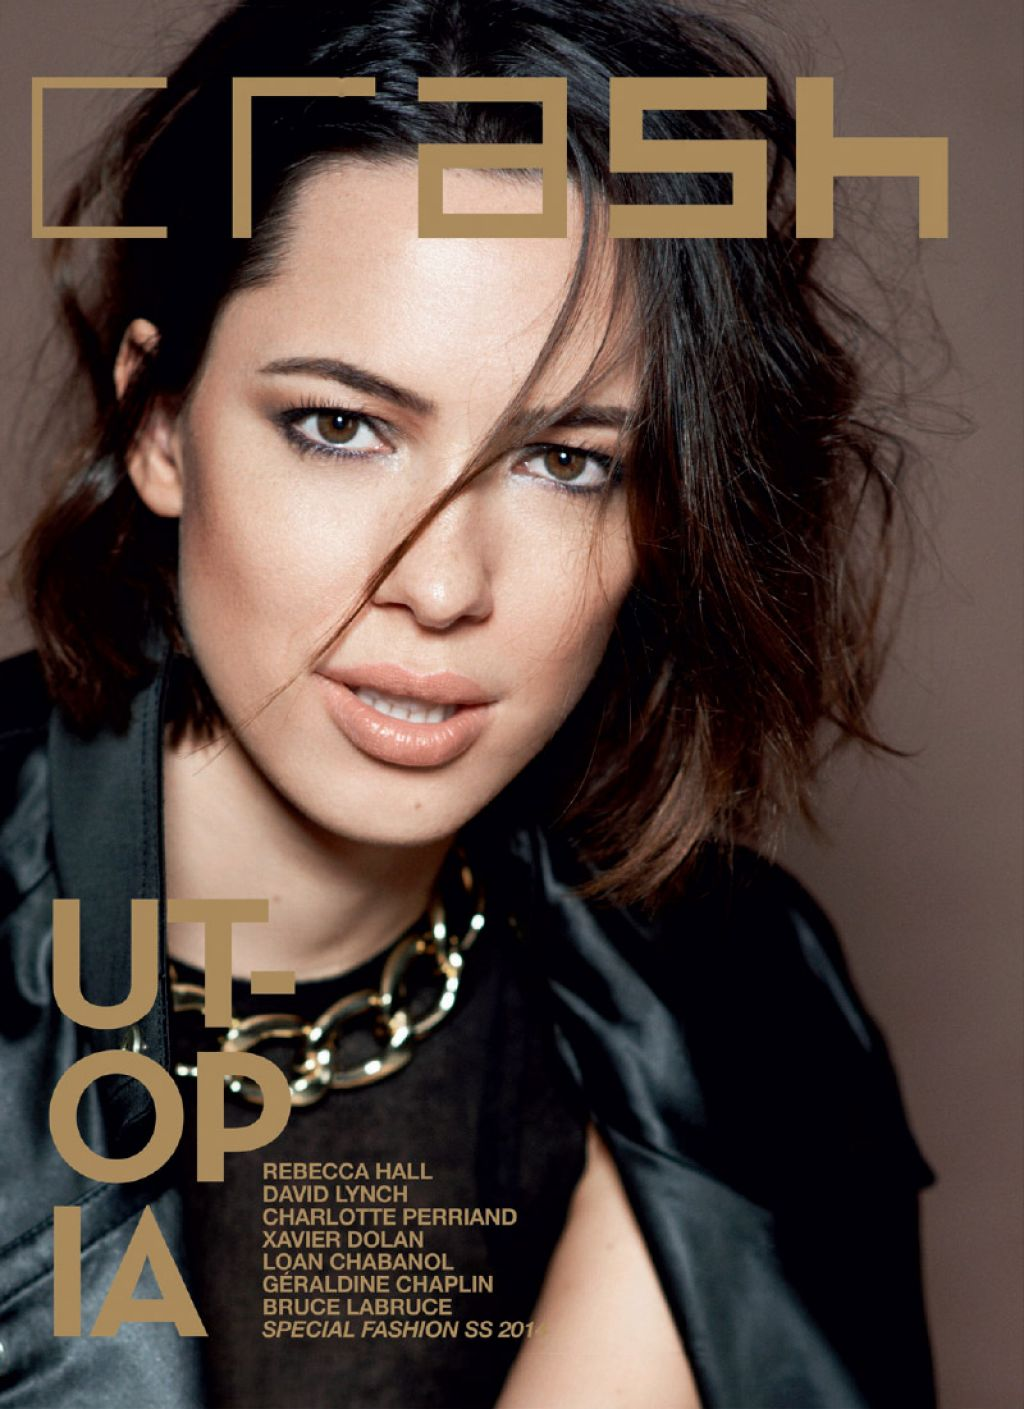 Rebecca Hall - Crash Magazine #67 2014 (by Blossom Berkofsky)